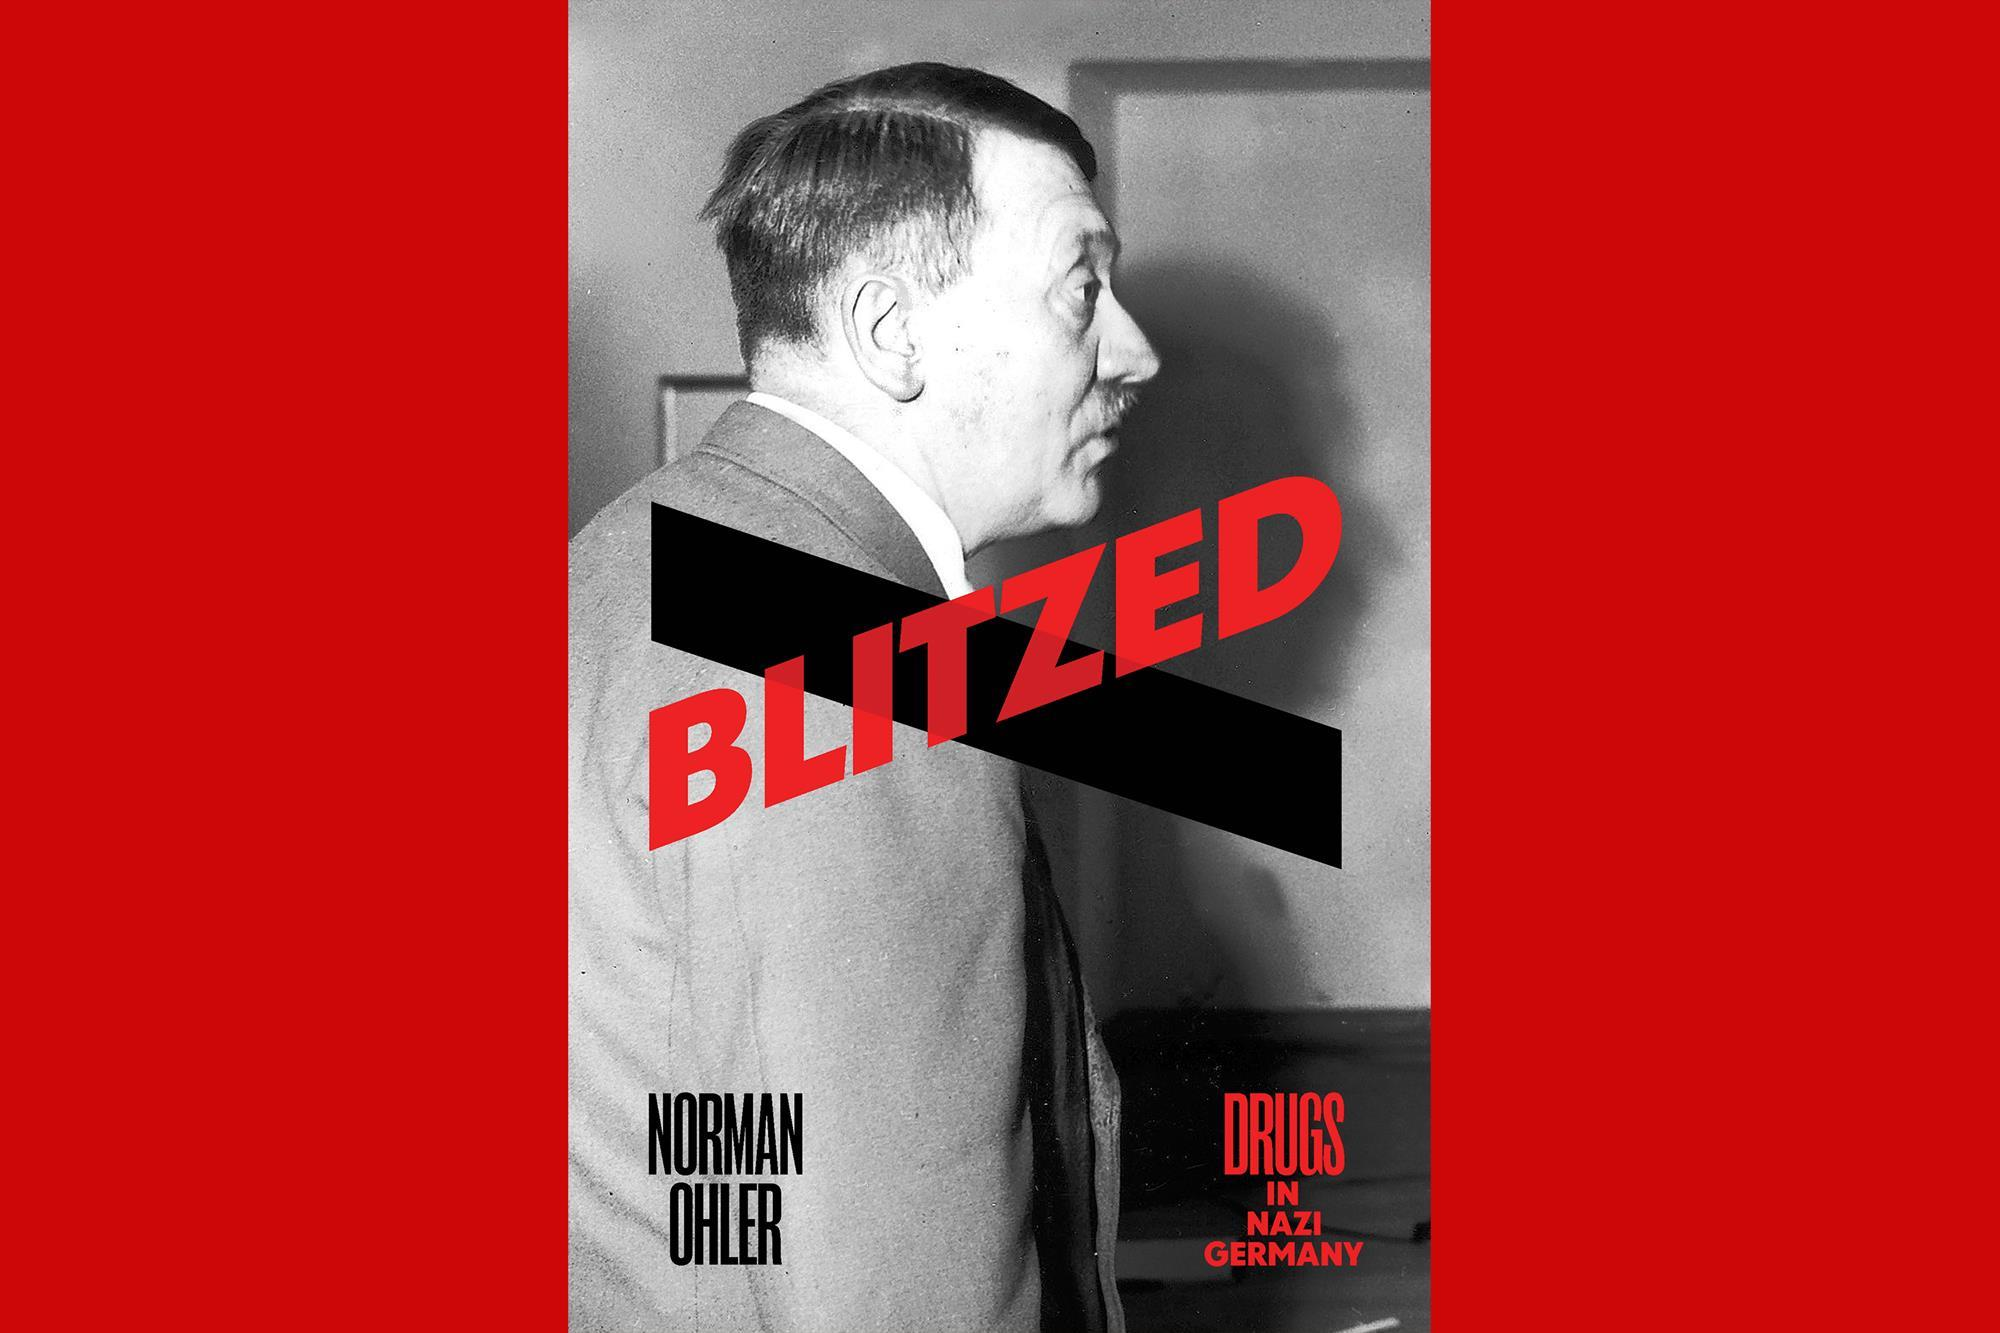 Blitzed: drugs in Nazi Germany | Review | Chemistry World